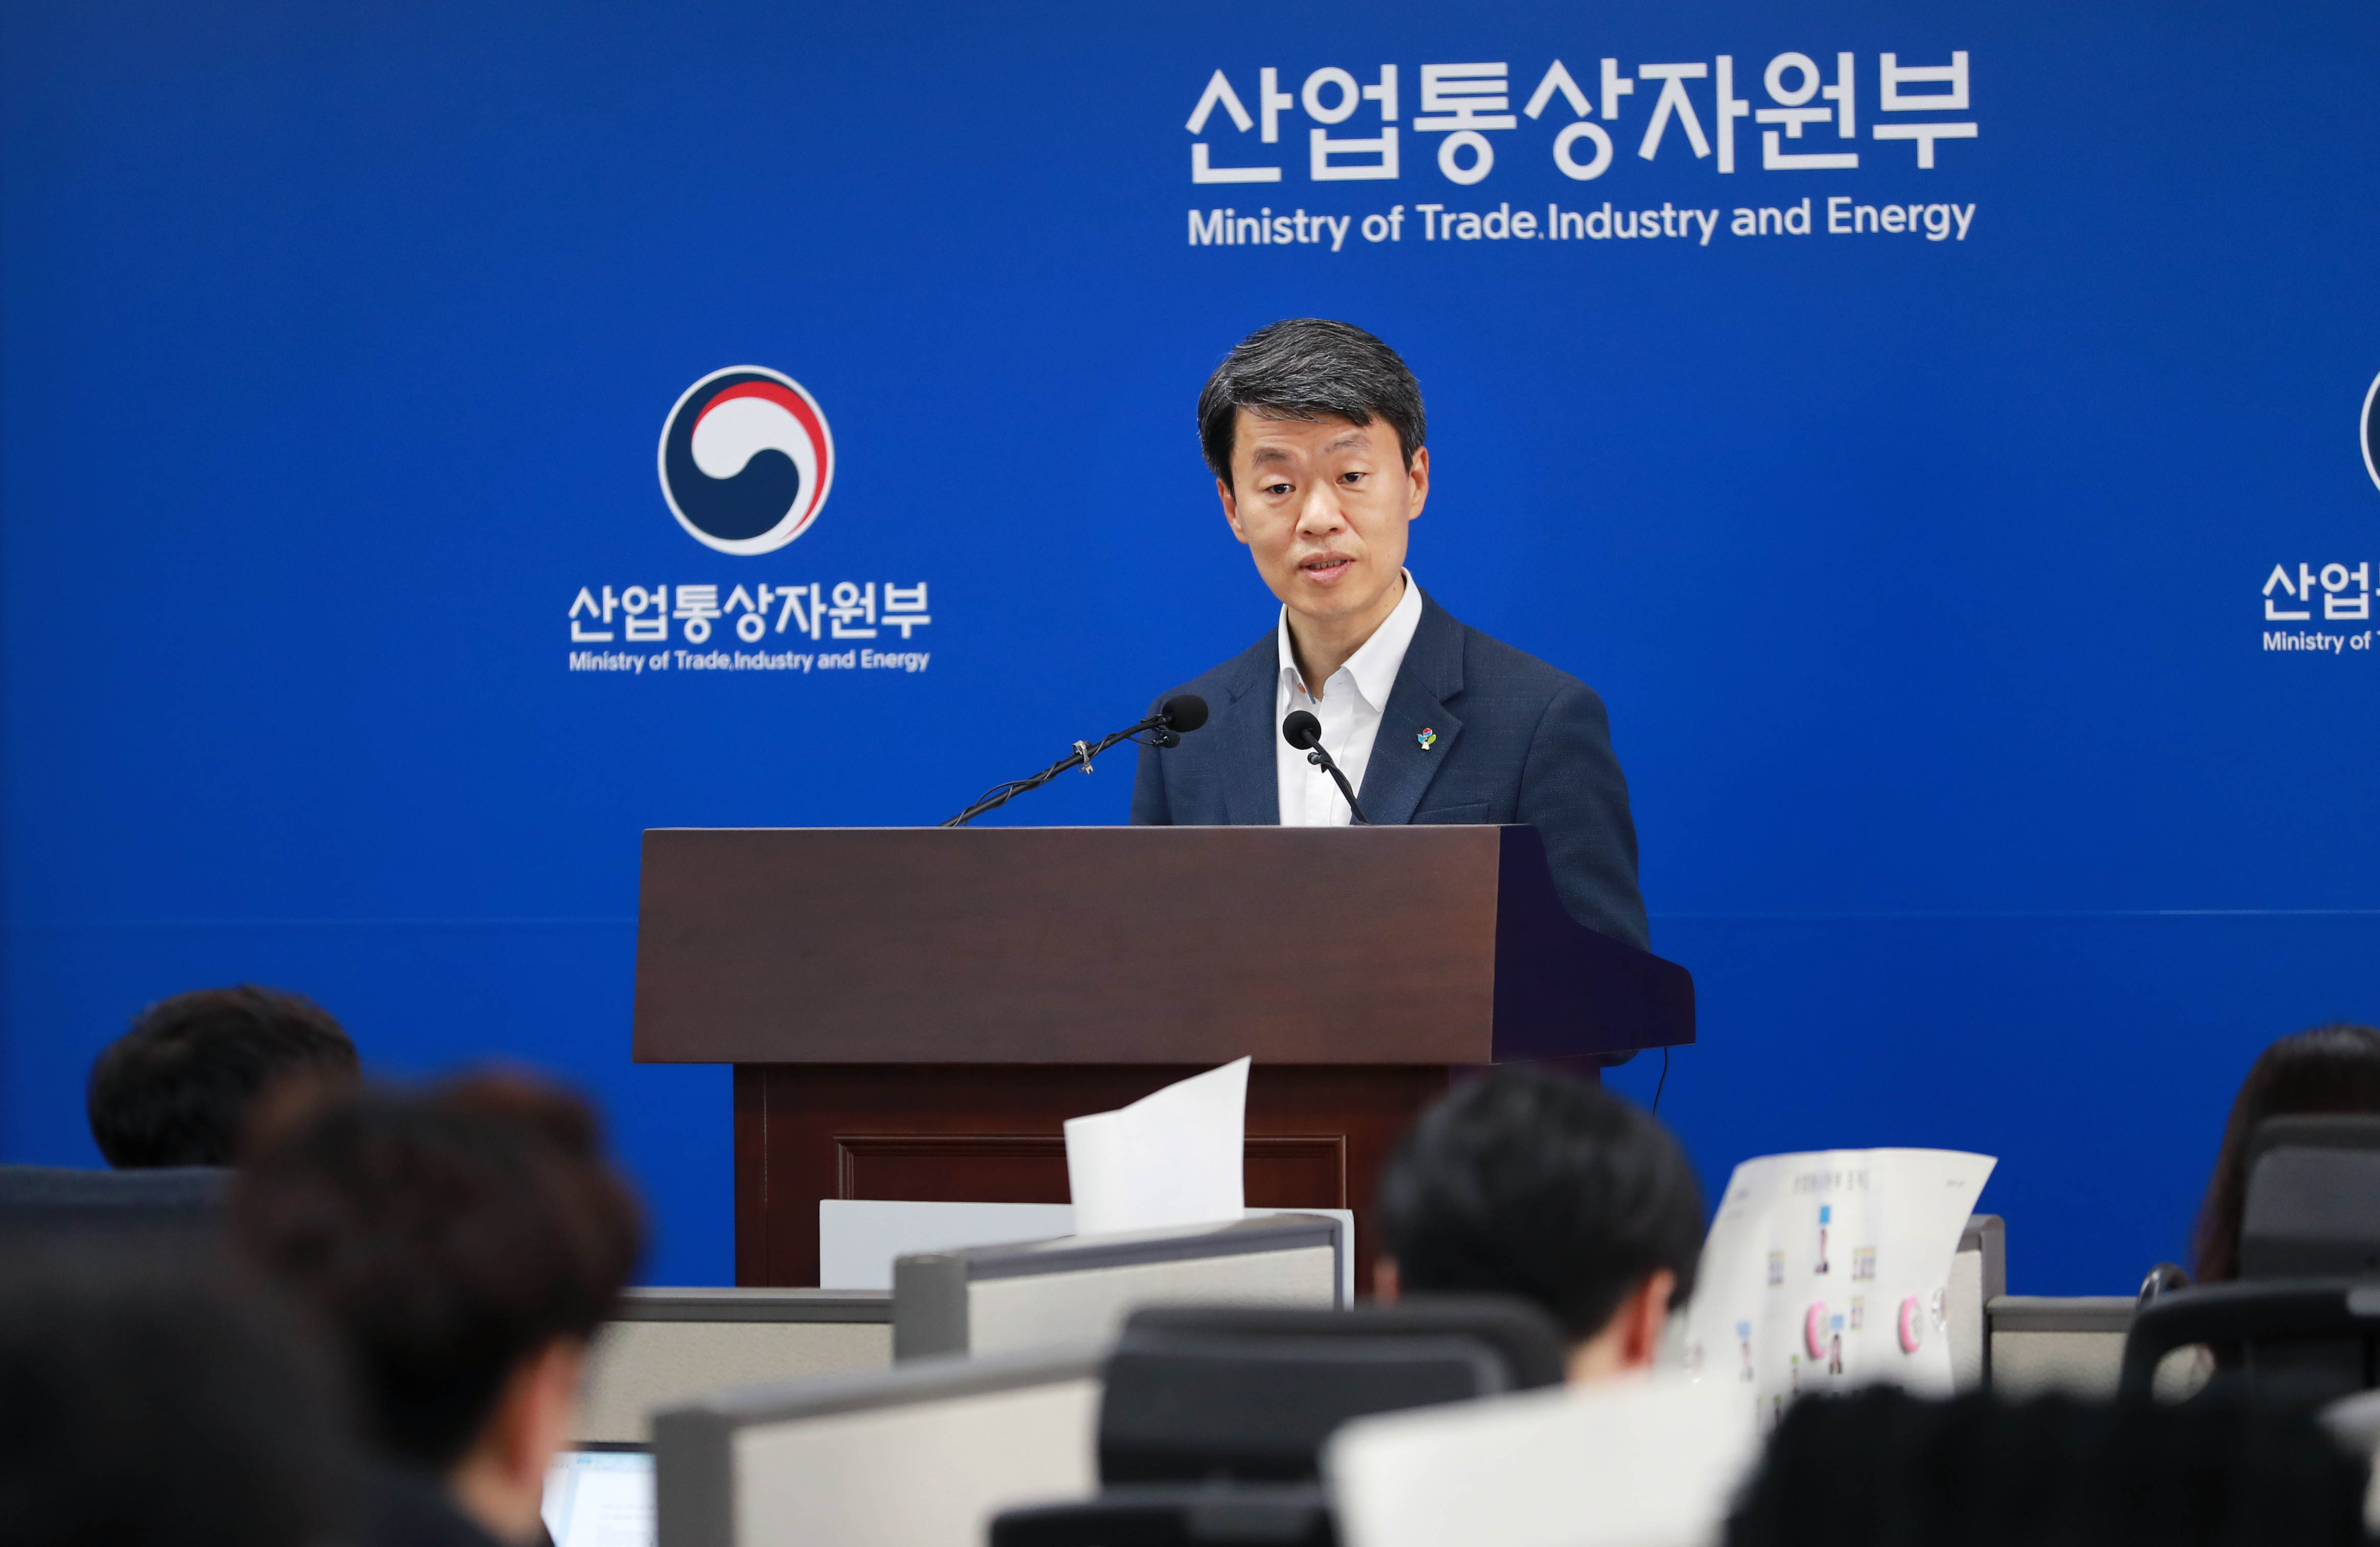 Korea to resume WTO complaint over Japan's export restrictions on key materials